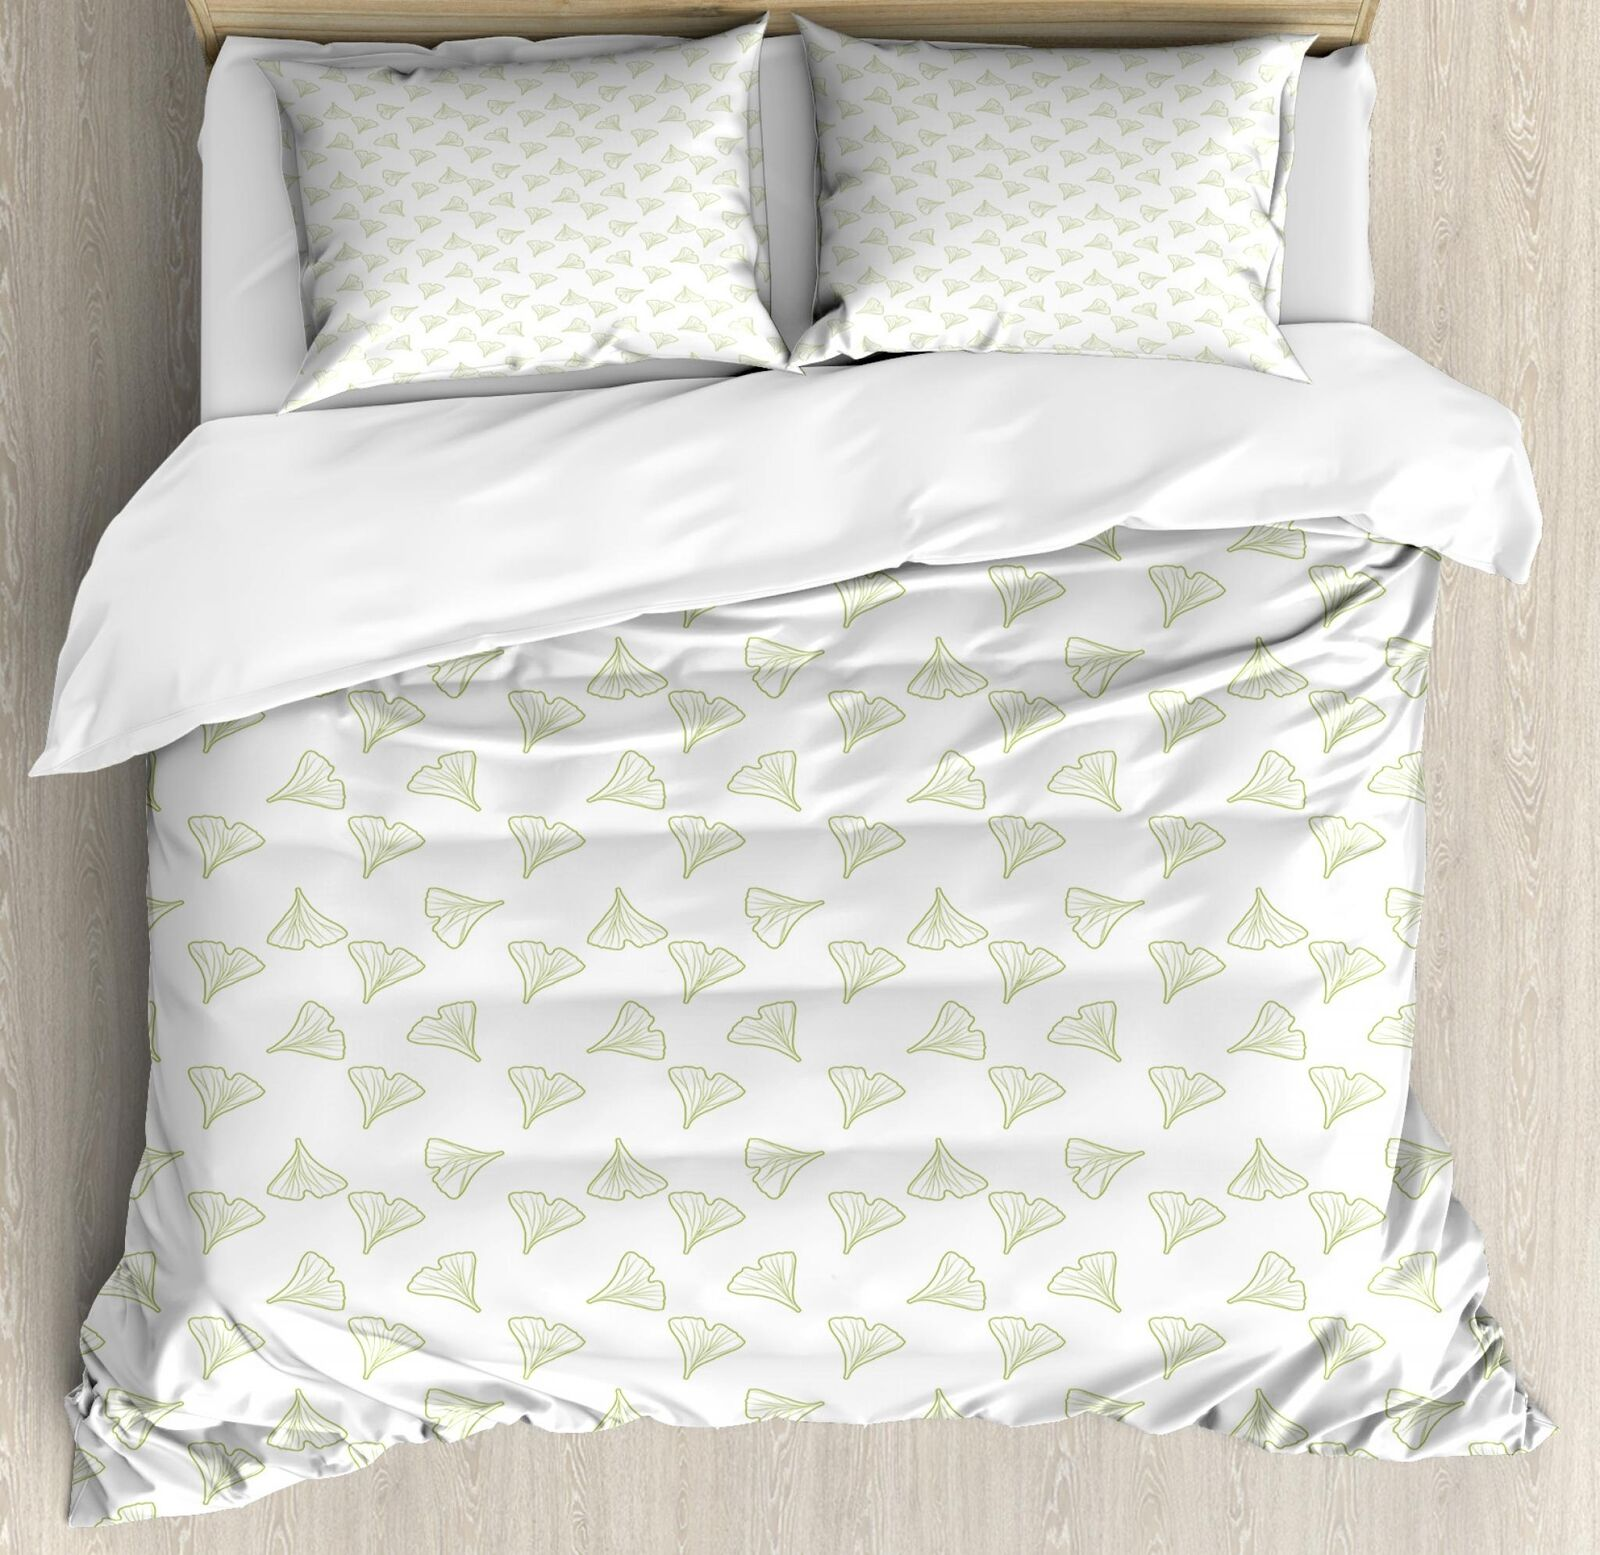 Gingko Duvet Cover Set Twin Queen King Größes with Pillow Shams